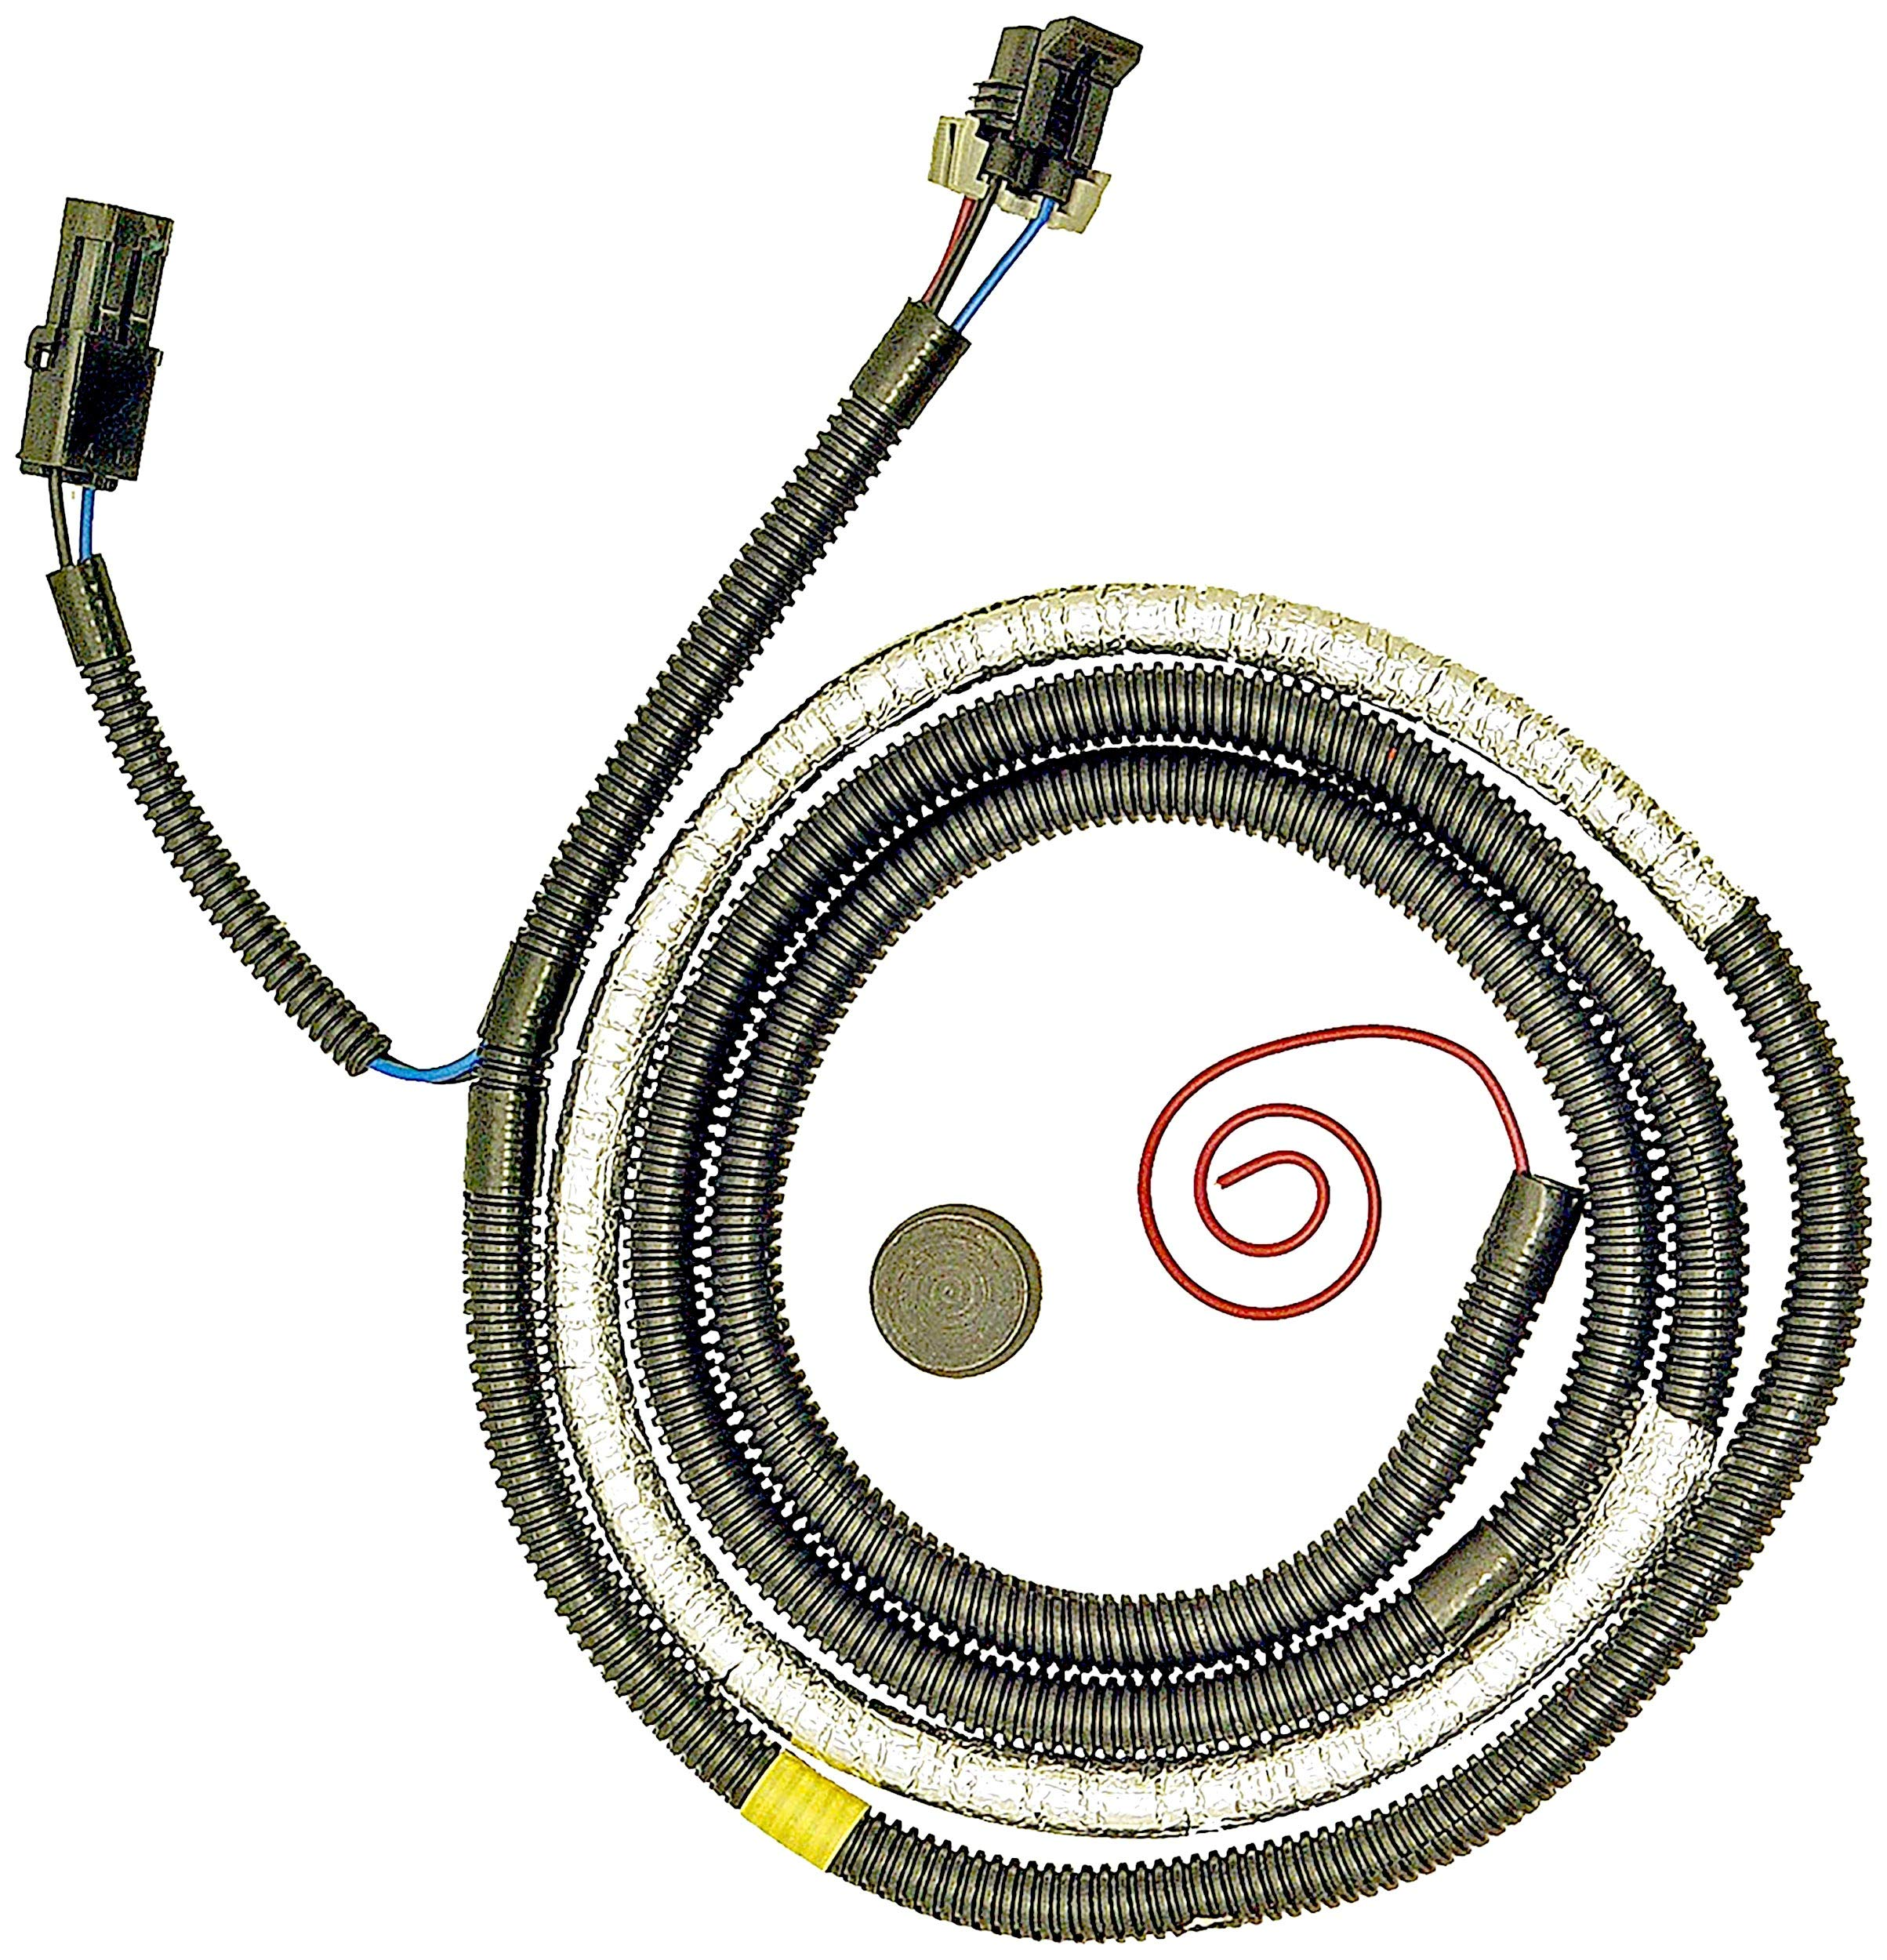 APDTY 711711 4WD Actuator Wiring Harness For Four